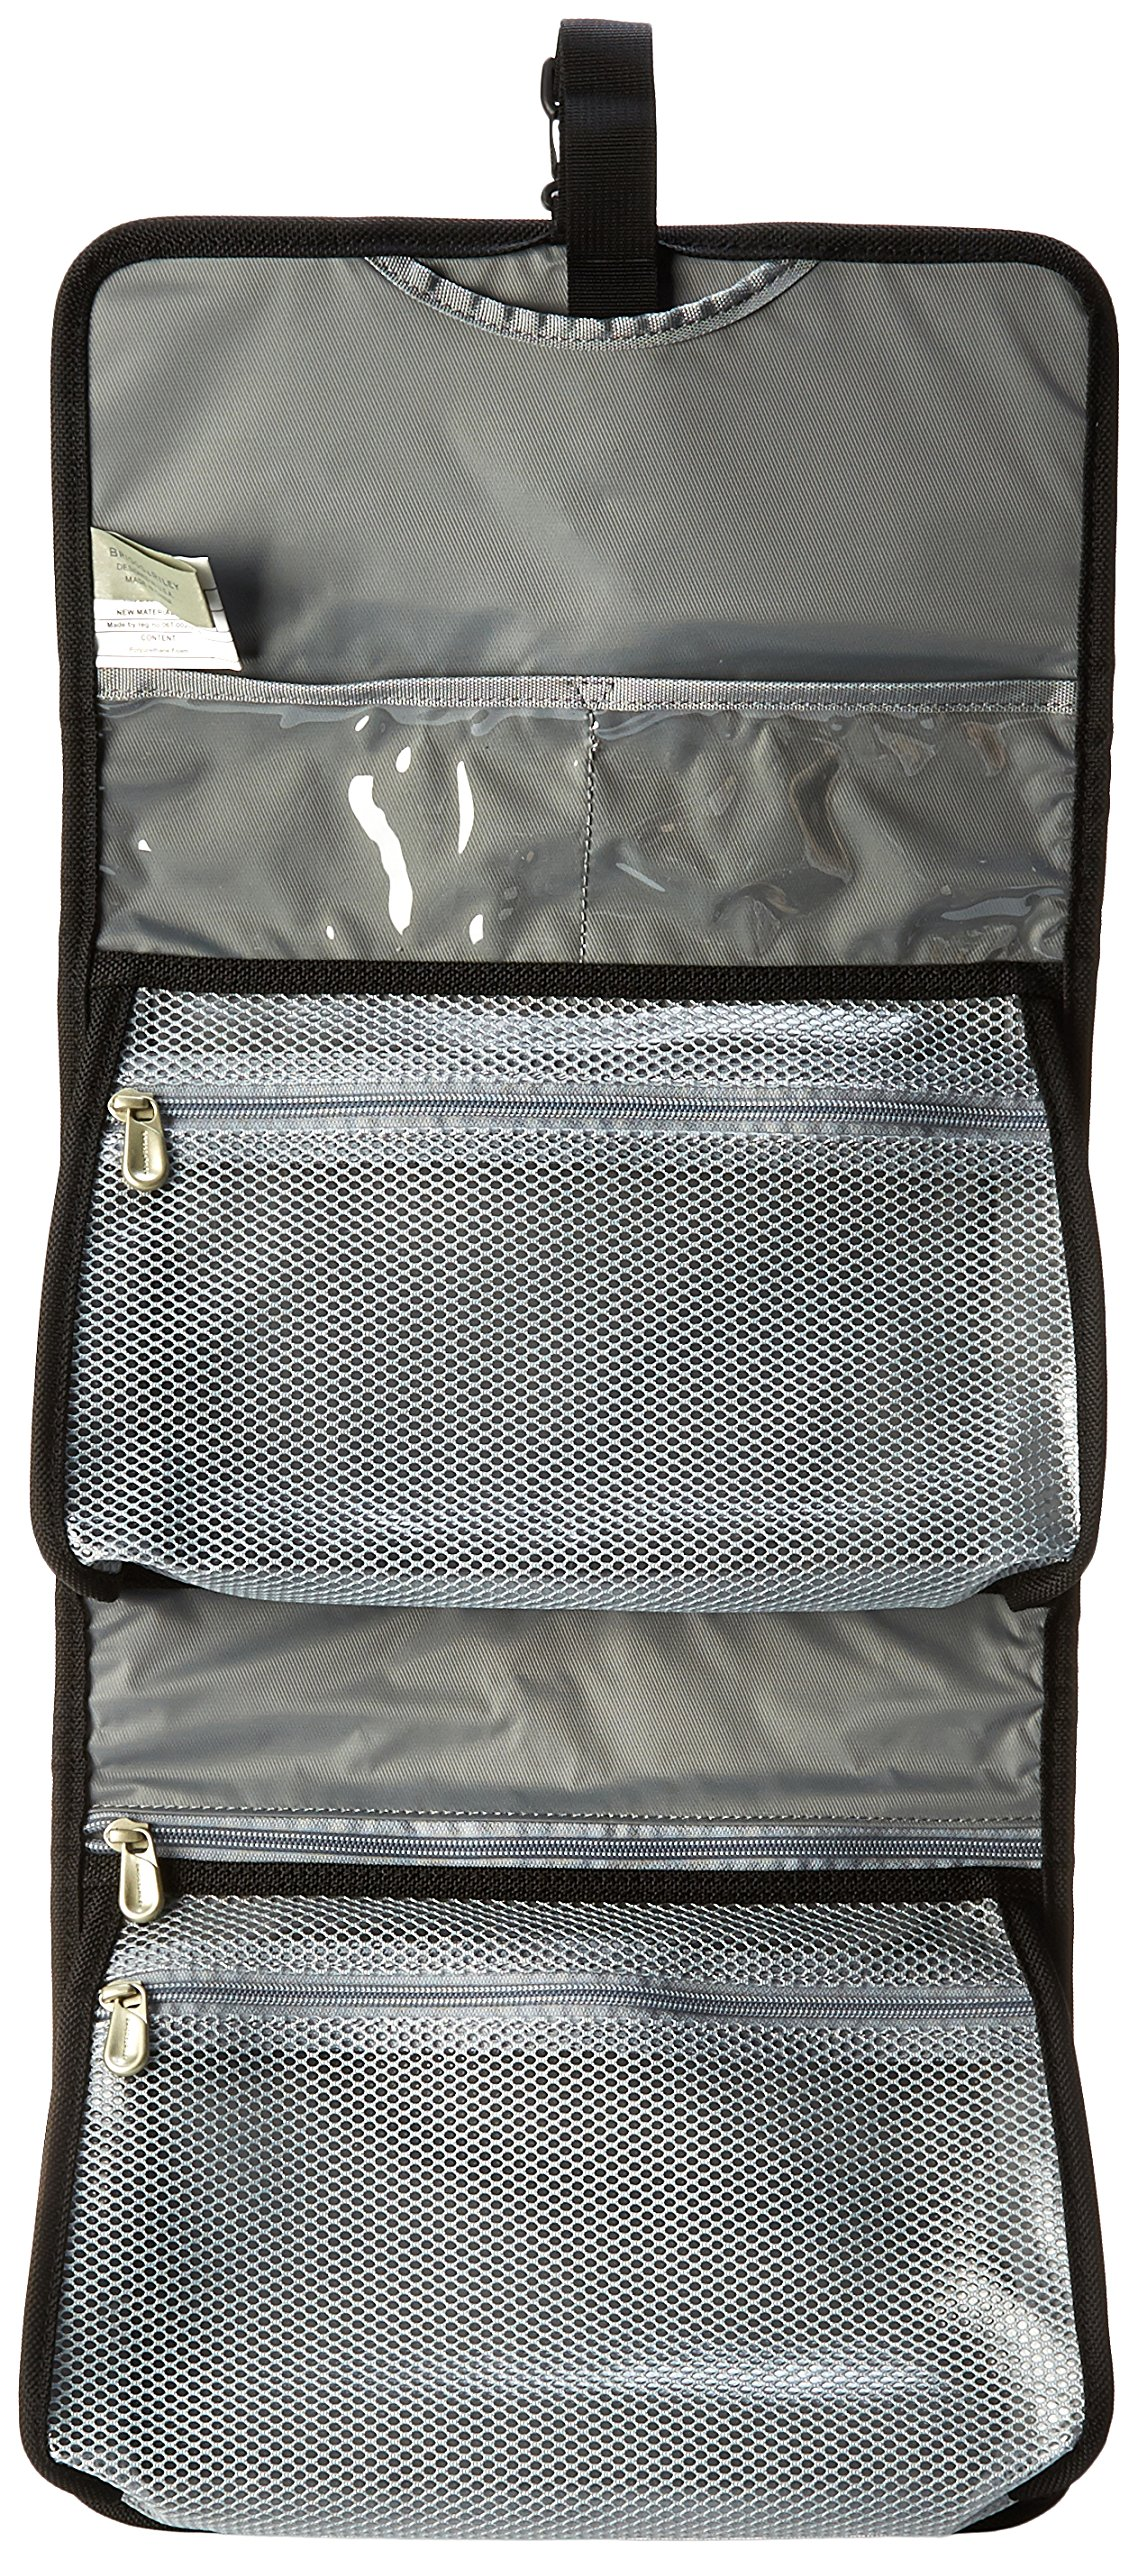 Briggs & Riley Deluxe Toiletry Kit, Black, One Size by Briggs & Riley (Image #6)